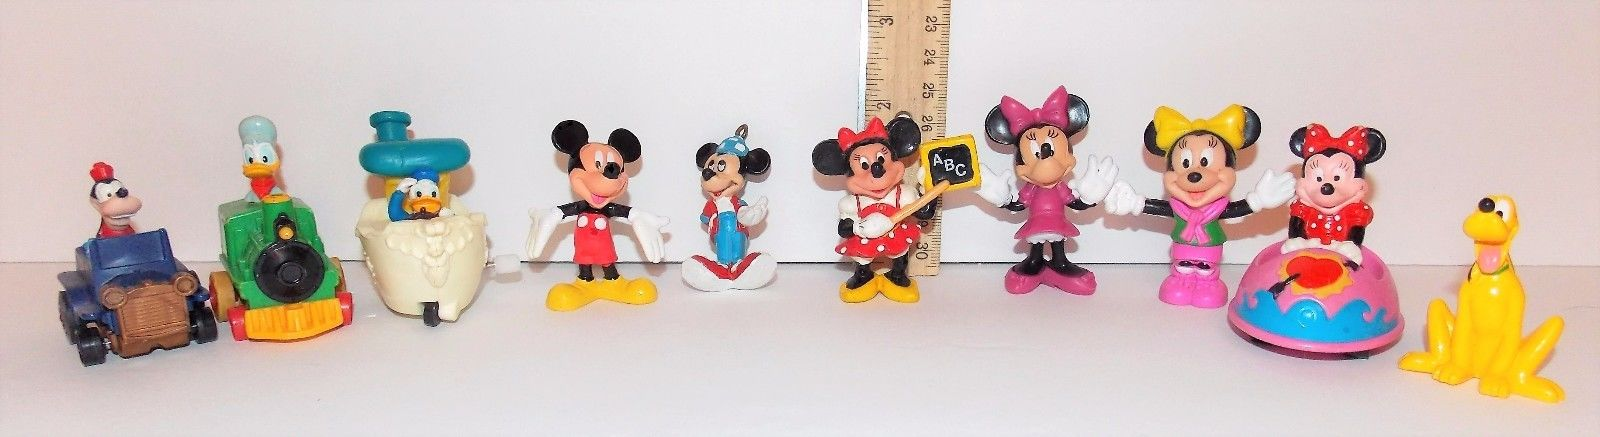 10 Vintage Walt Disney Mickey Mouse and Friends 2